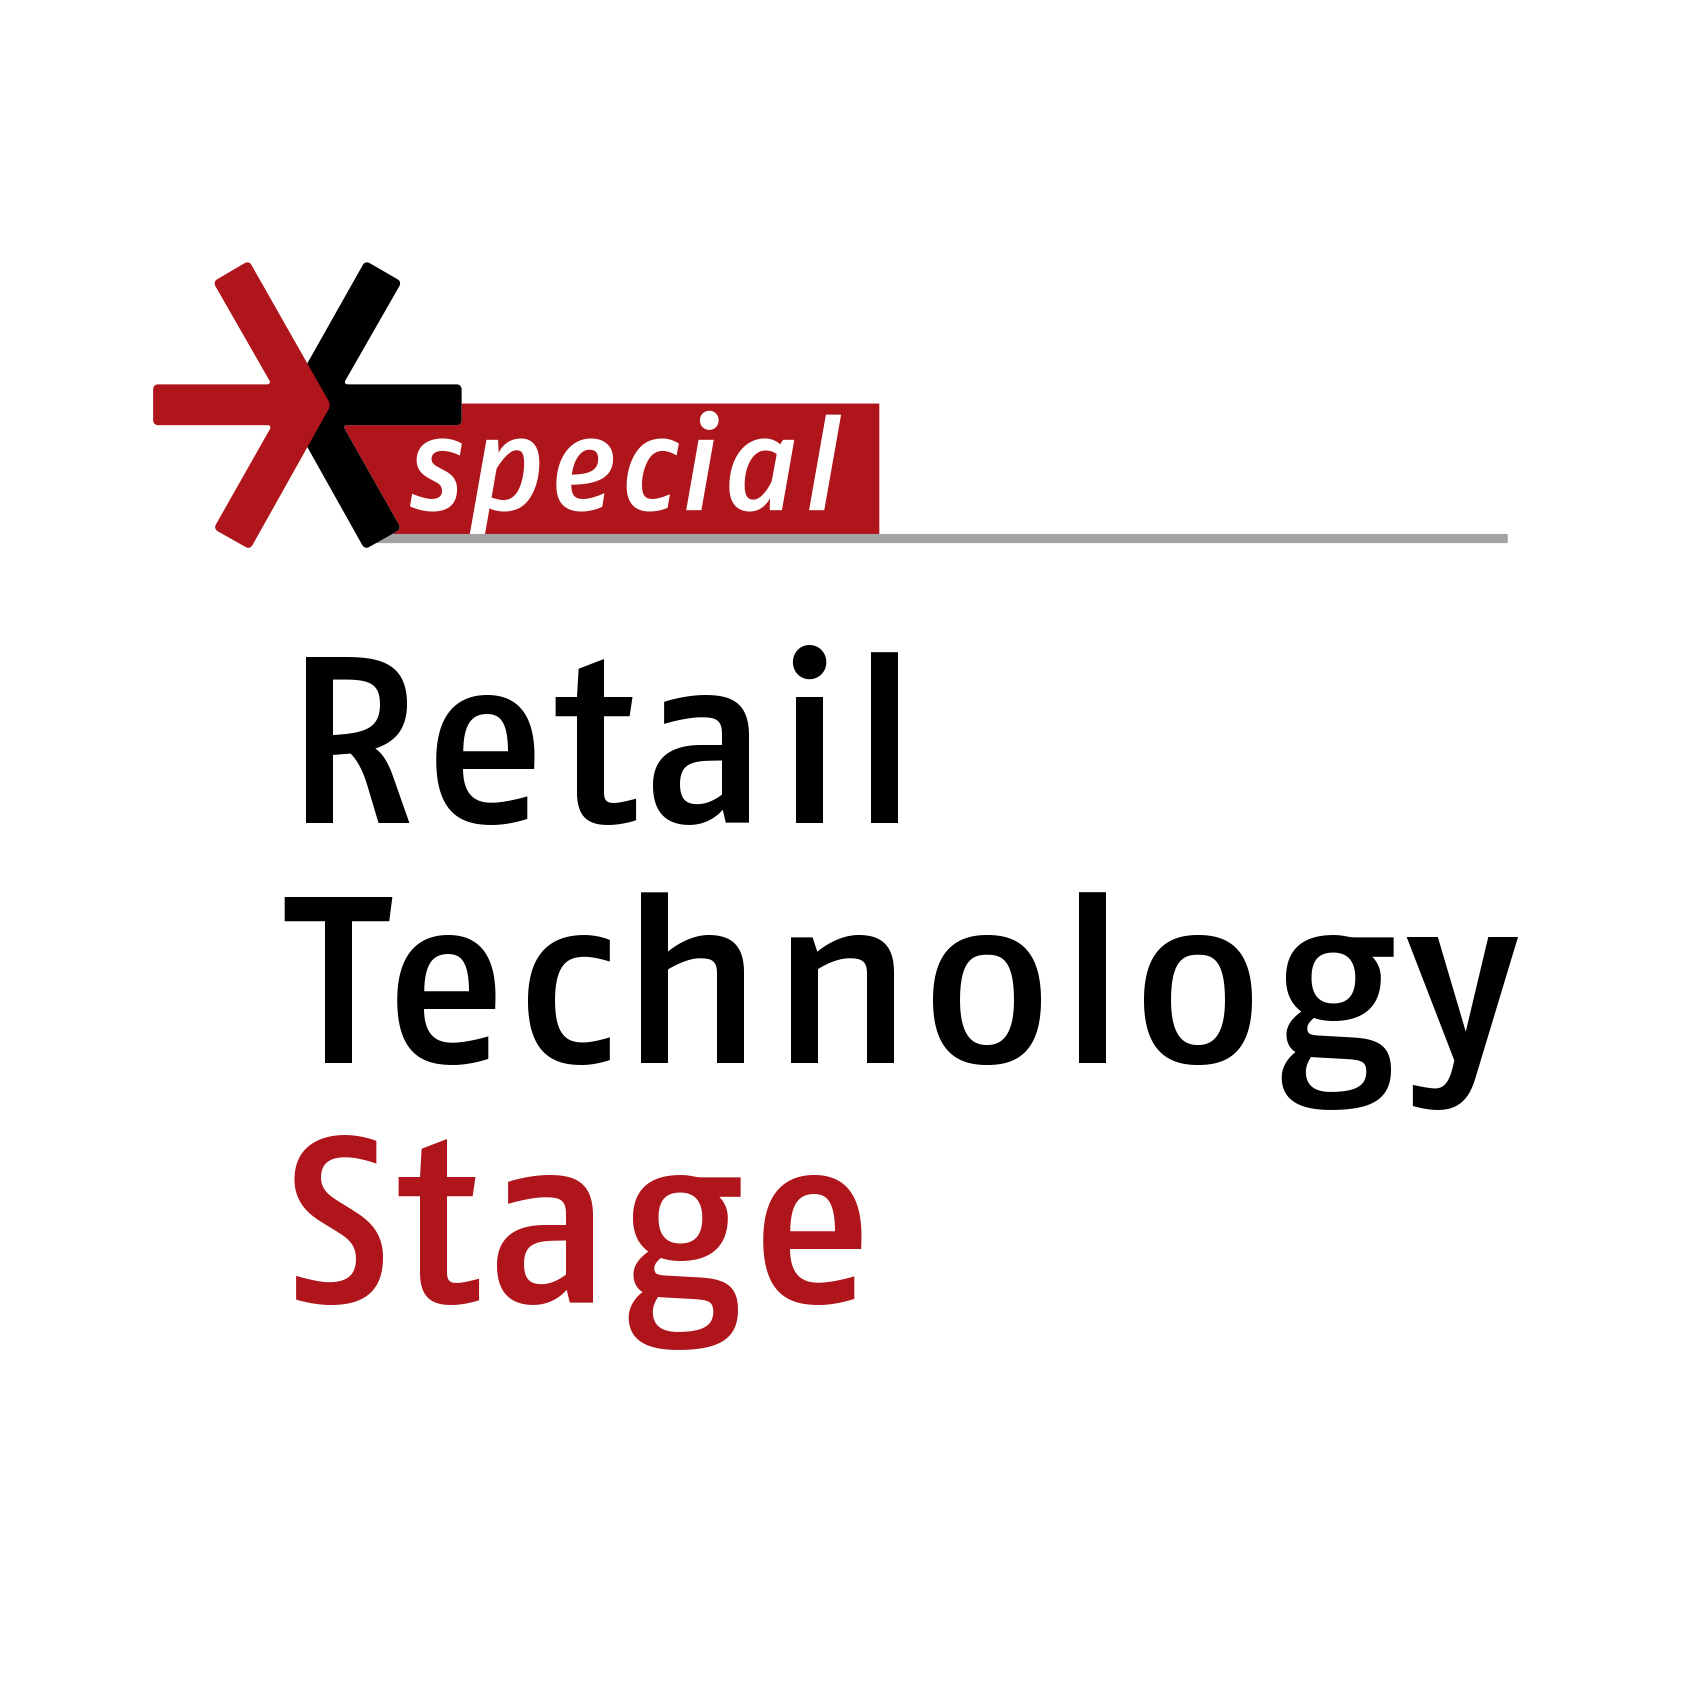 Retail Technology Stage